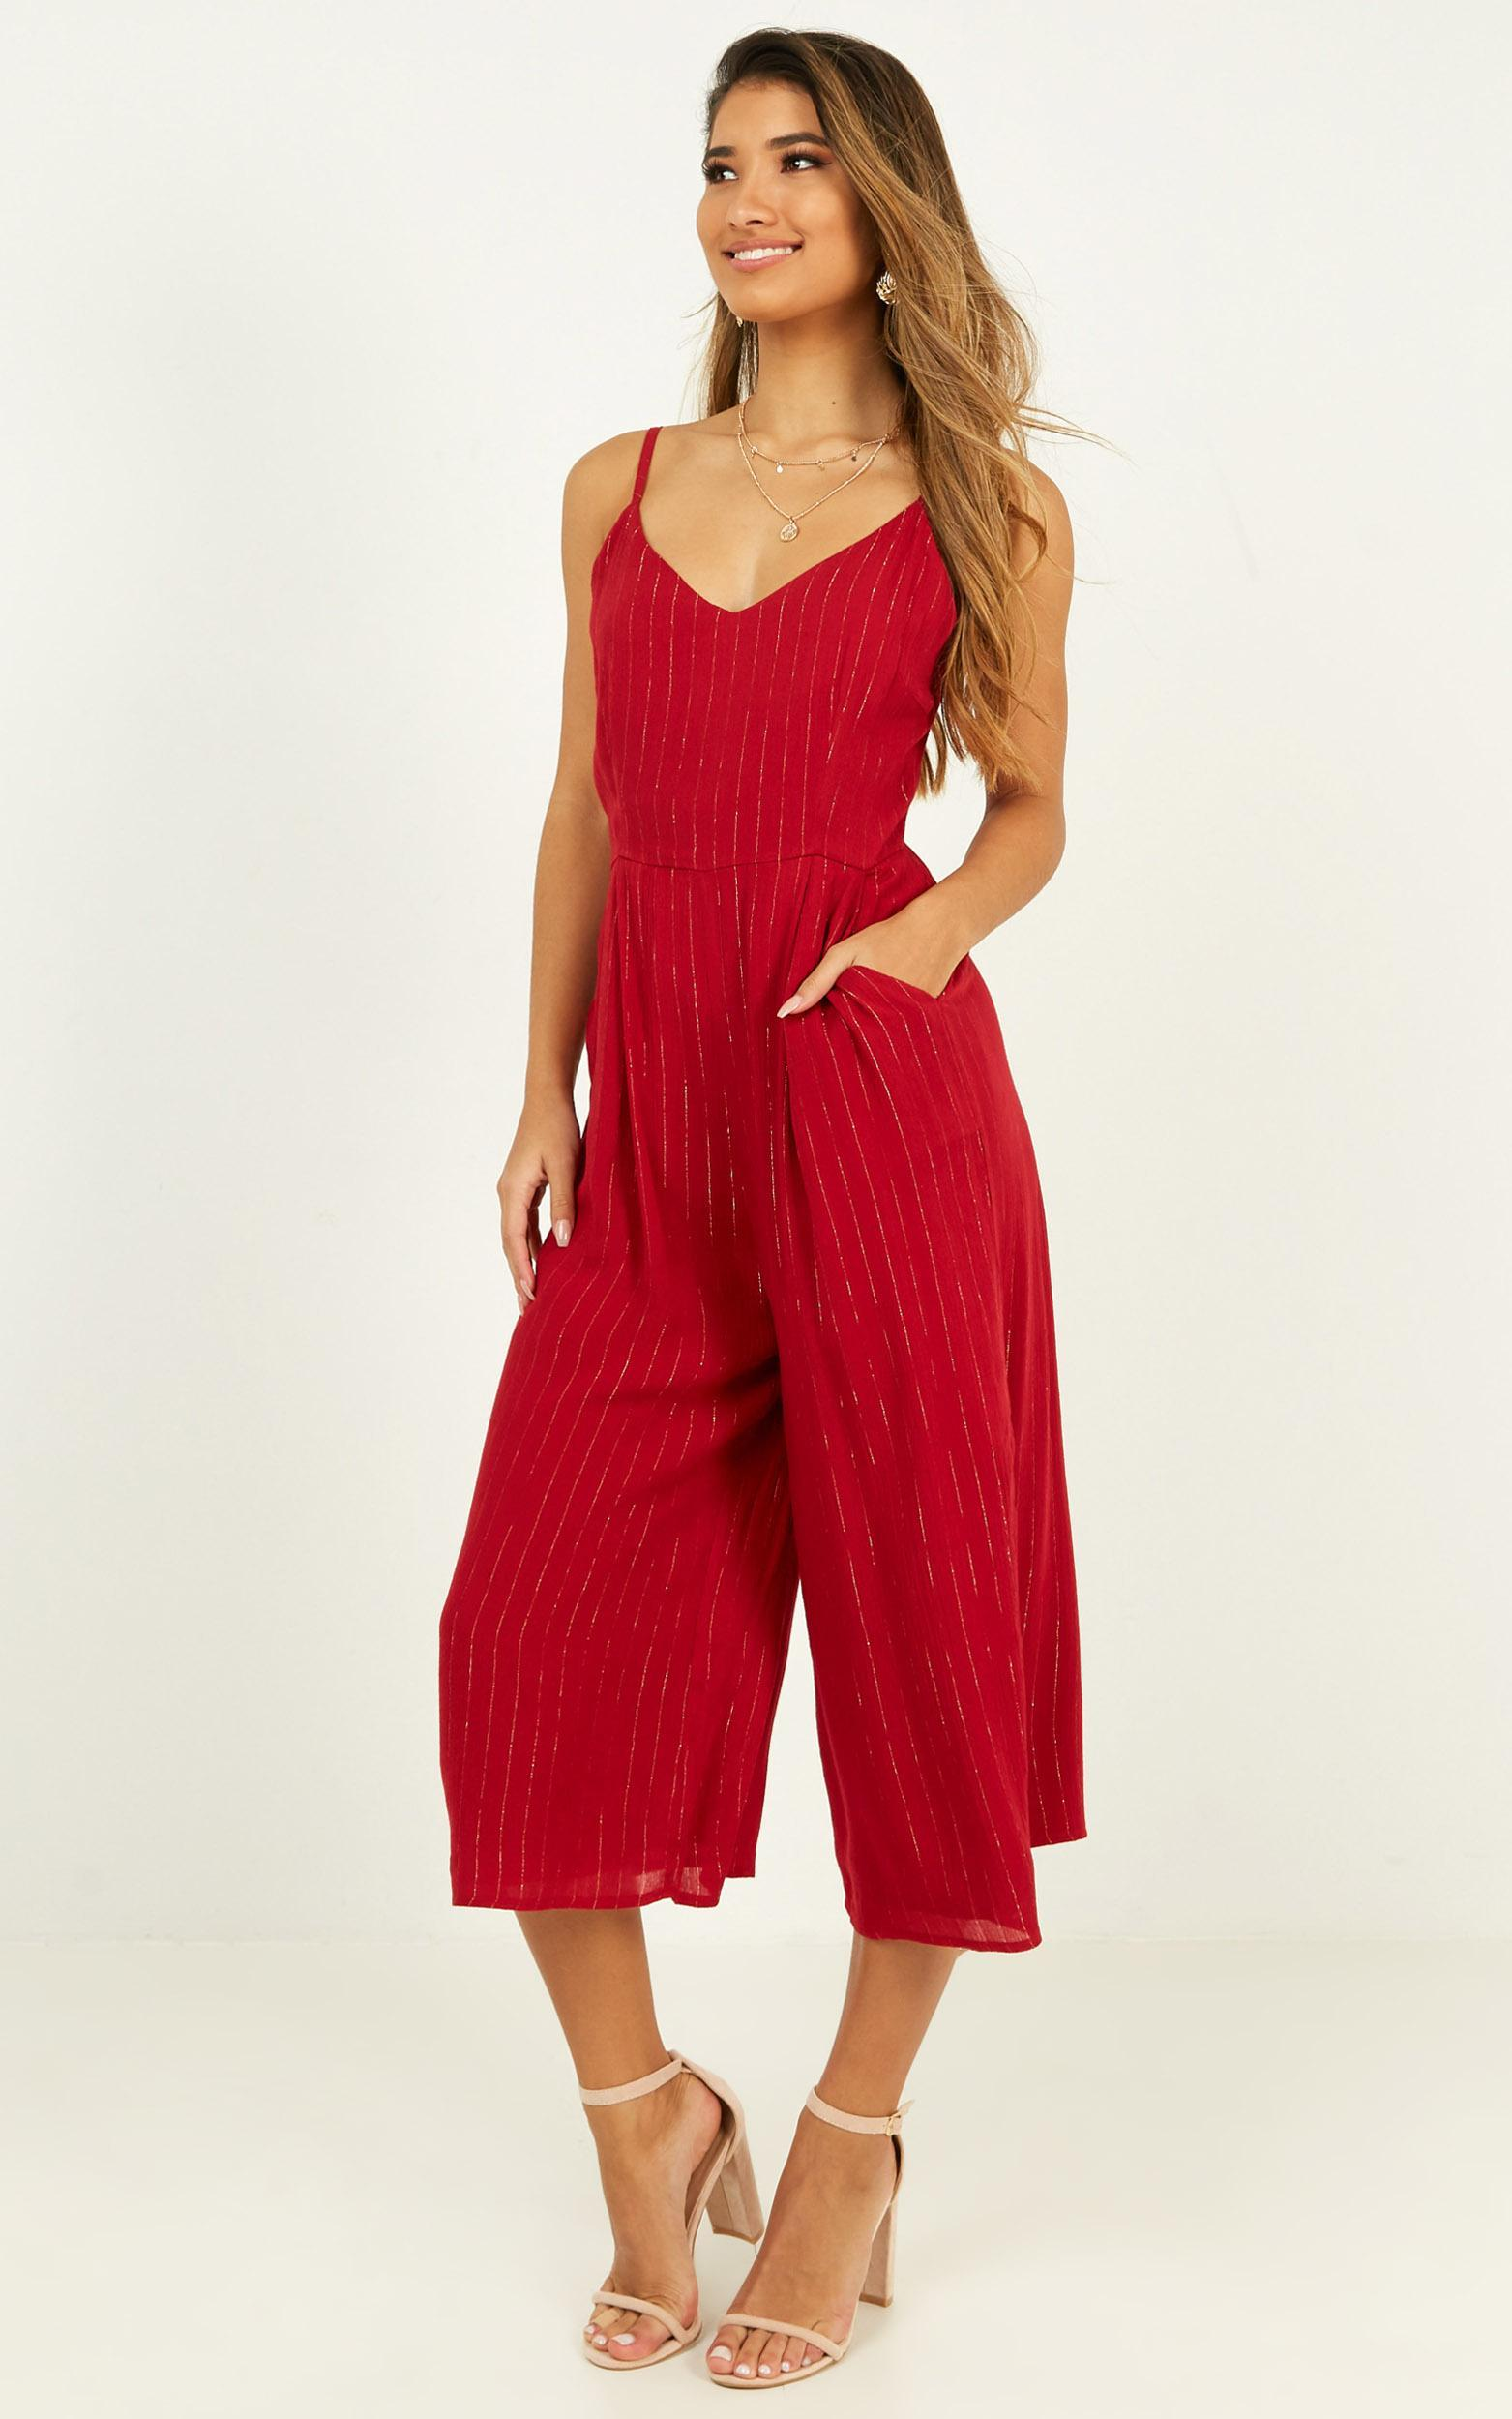 Life Could Be Jumpsuit in wine - 20 (XXXXL), Wine, hi-res image number null